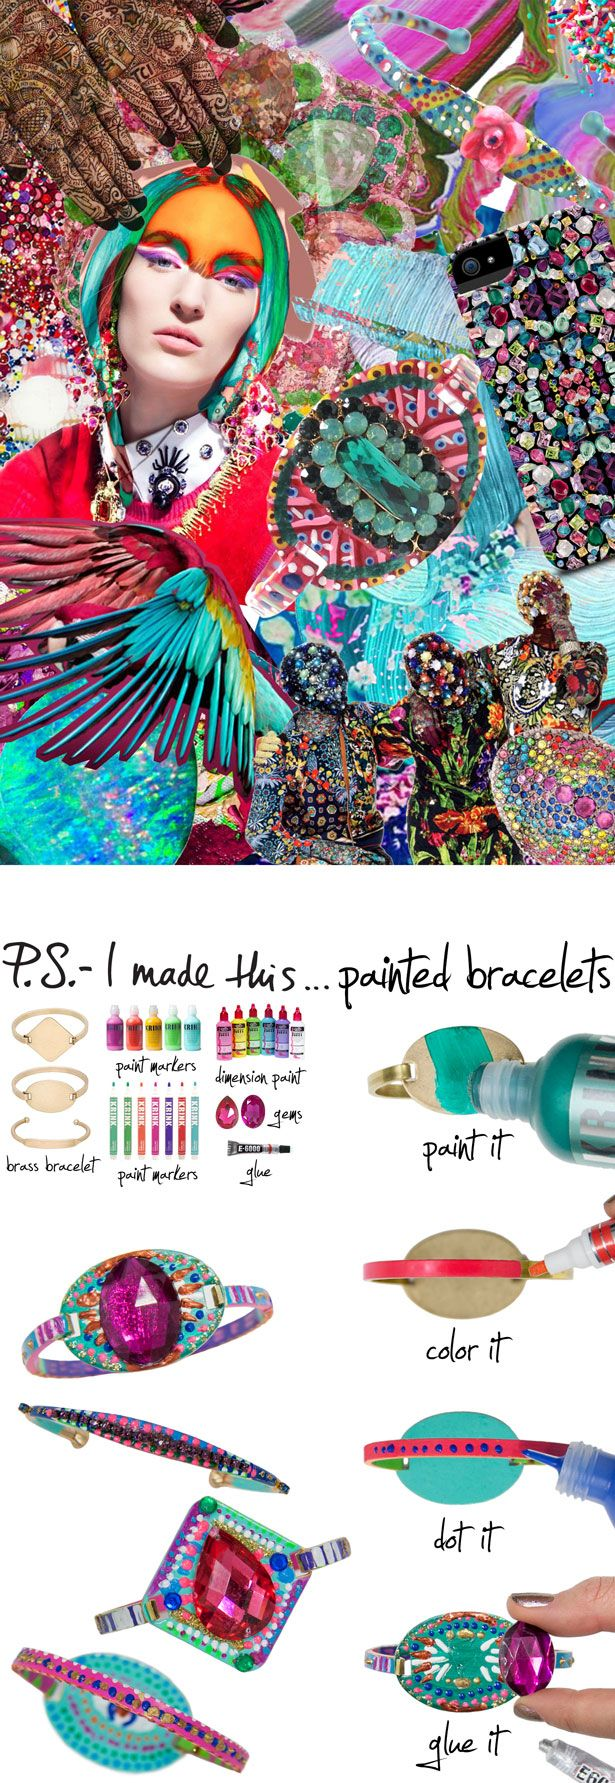 P.S.- I made this...Painted Bracelets #PSIMADETHIS #DIY